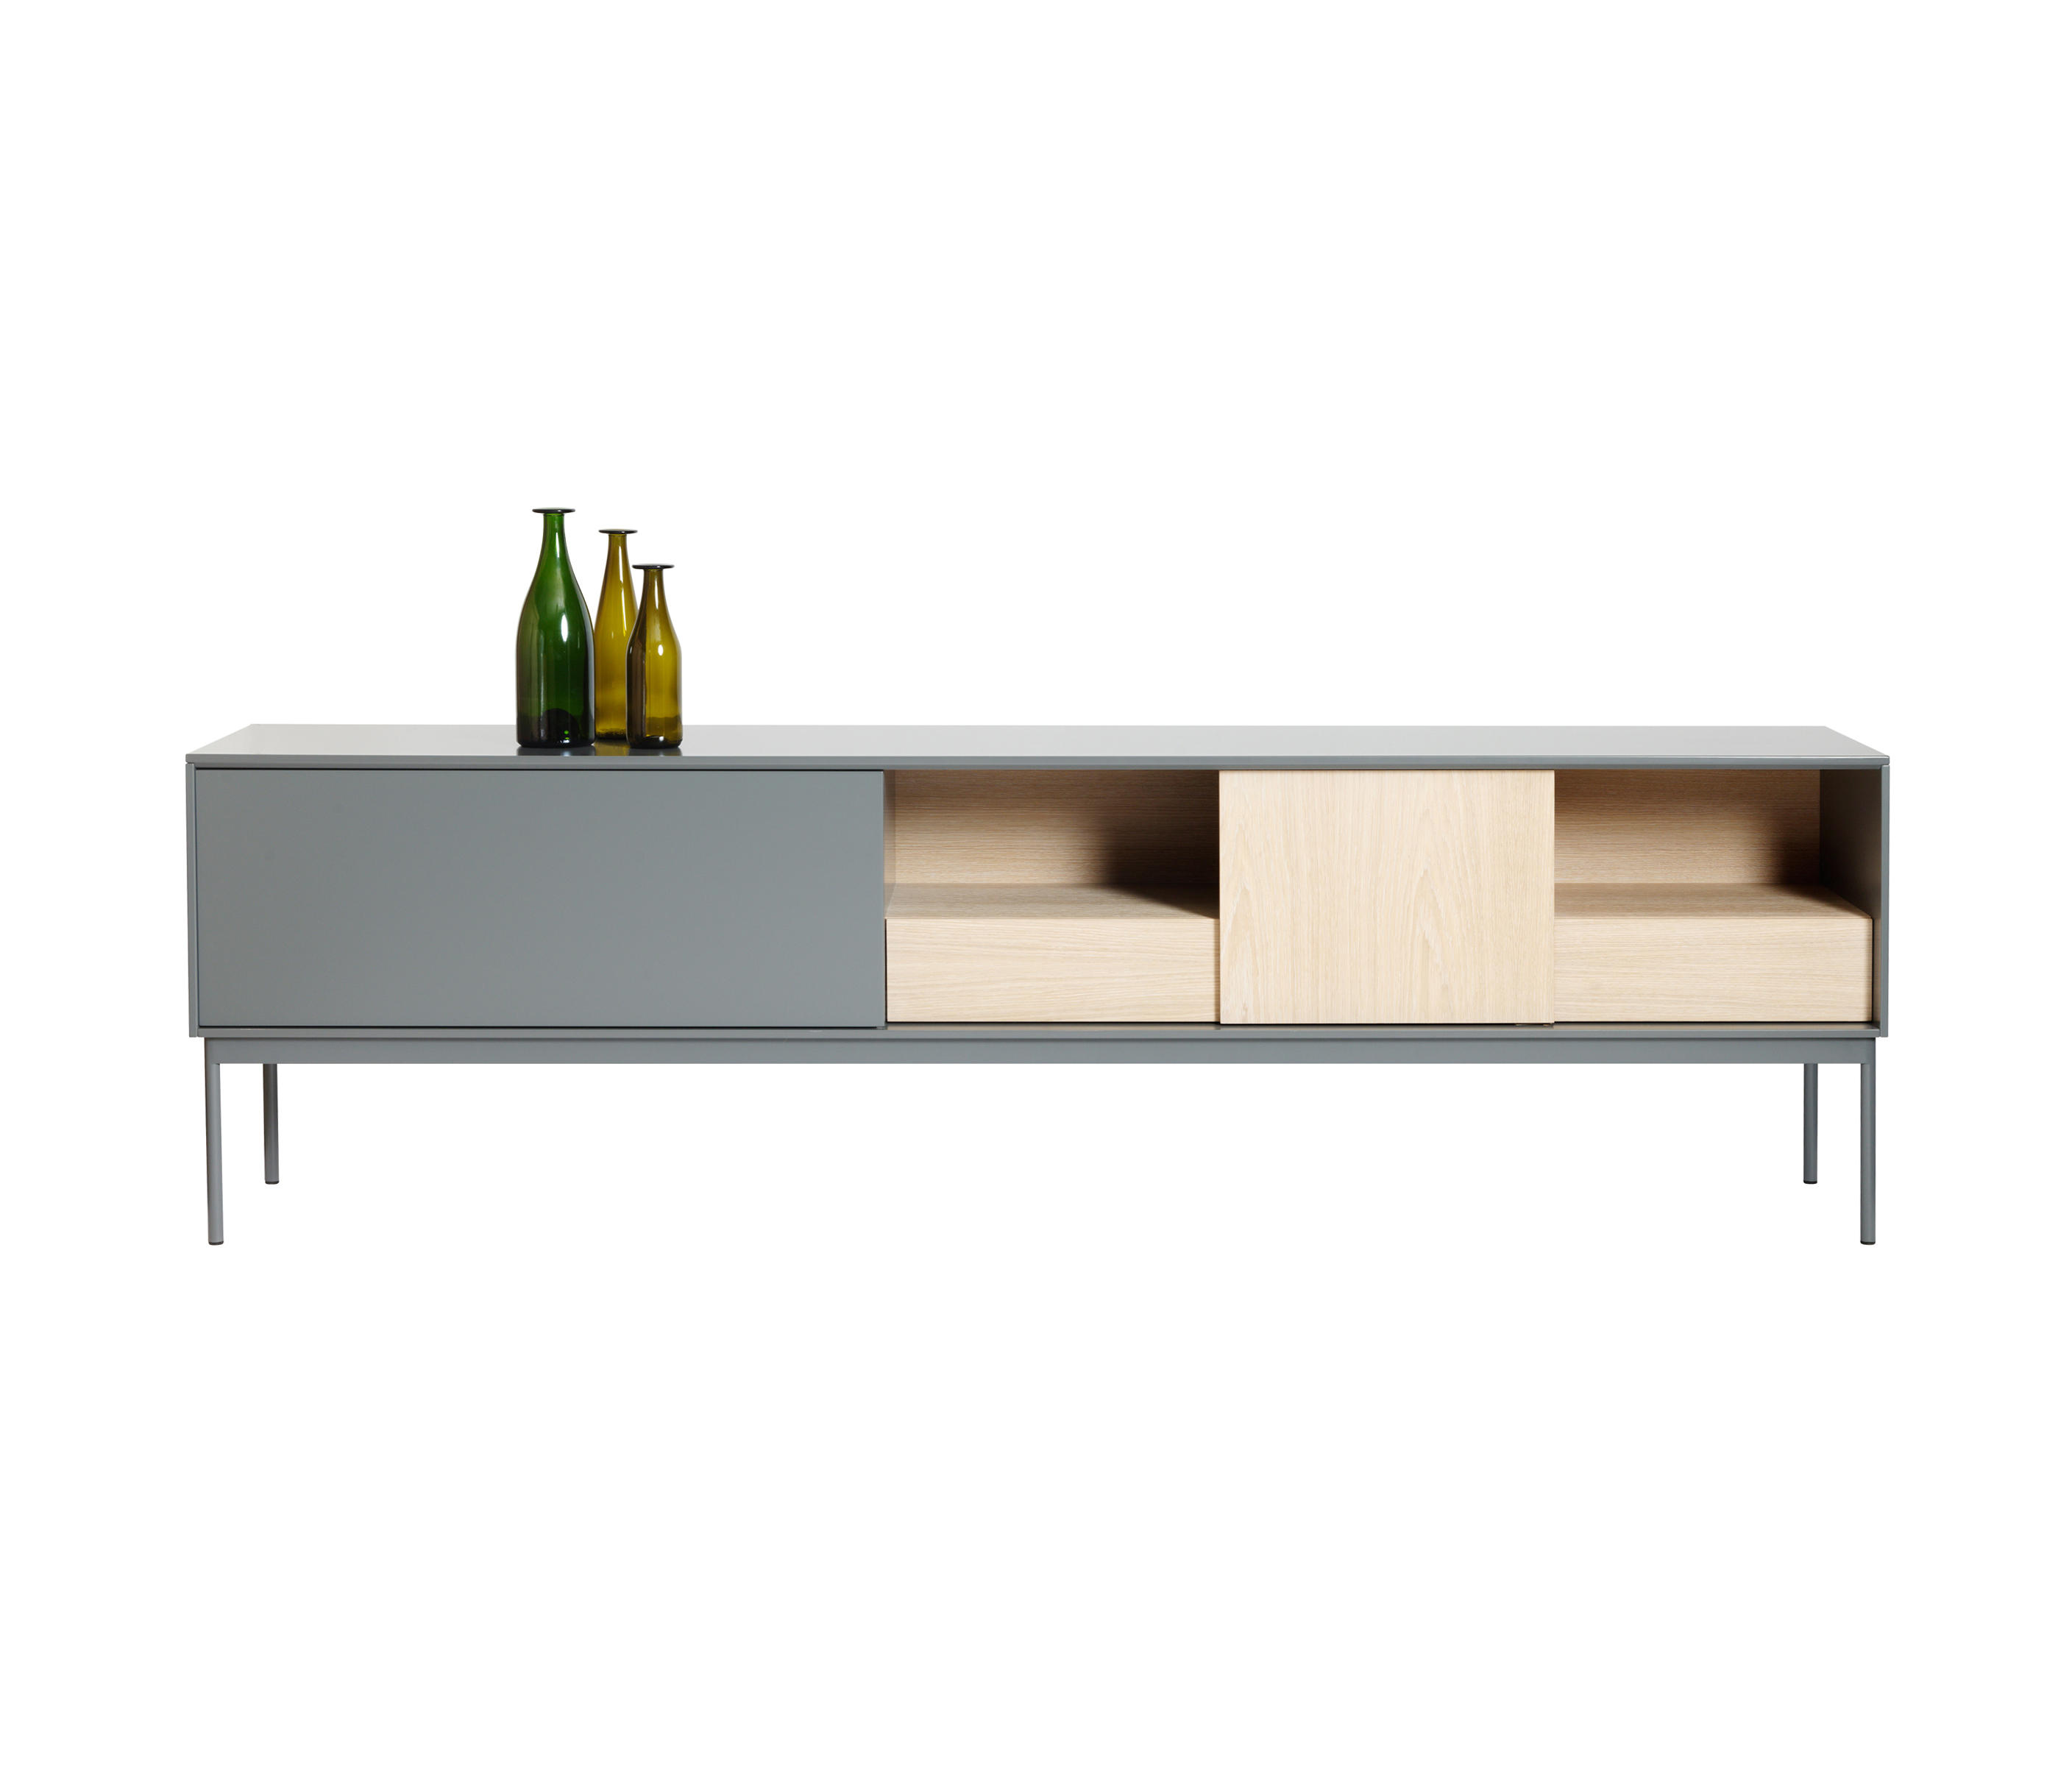 Besson cabinet 240 low sideboards from asplund architonic for Sideboard 240